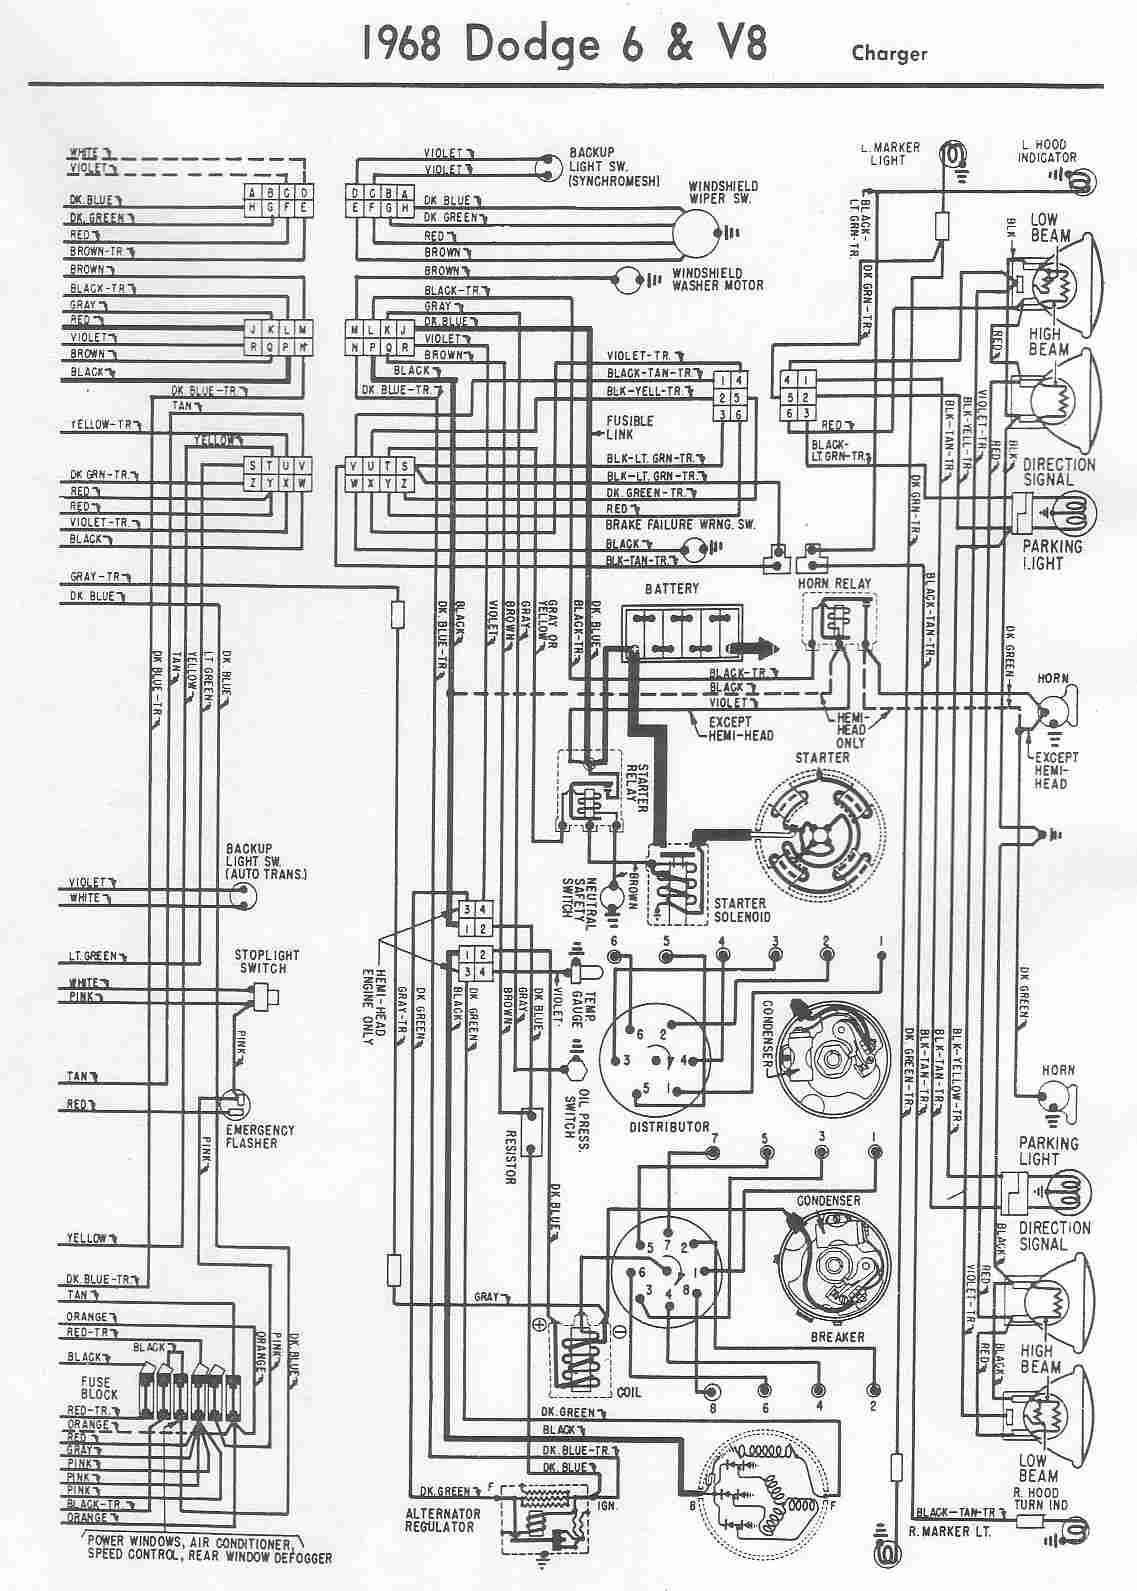 Fuse Diagram For 2006 Dodge Magnum All Kind Of Wiring Diagrams Box 2010 Charger Horn Best Site Harness 2005 Ram Location